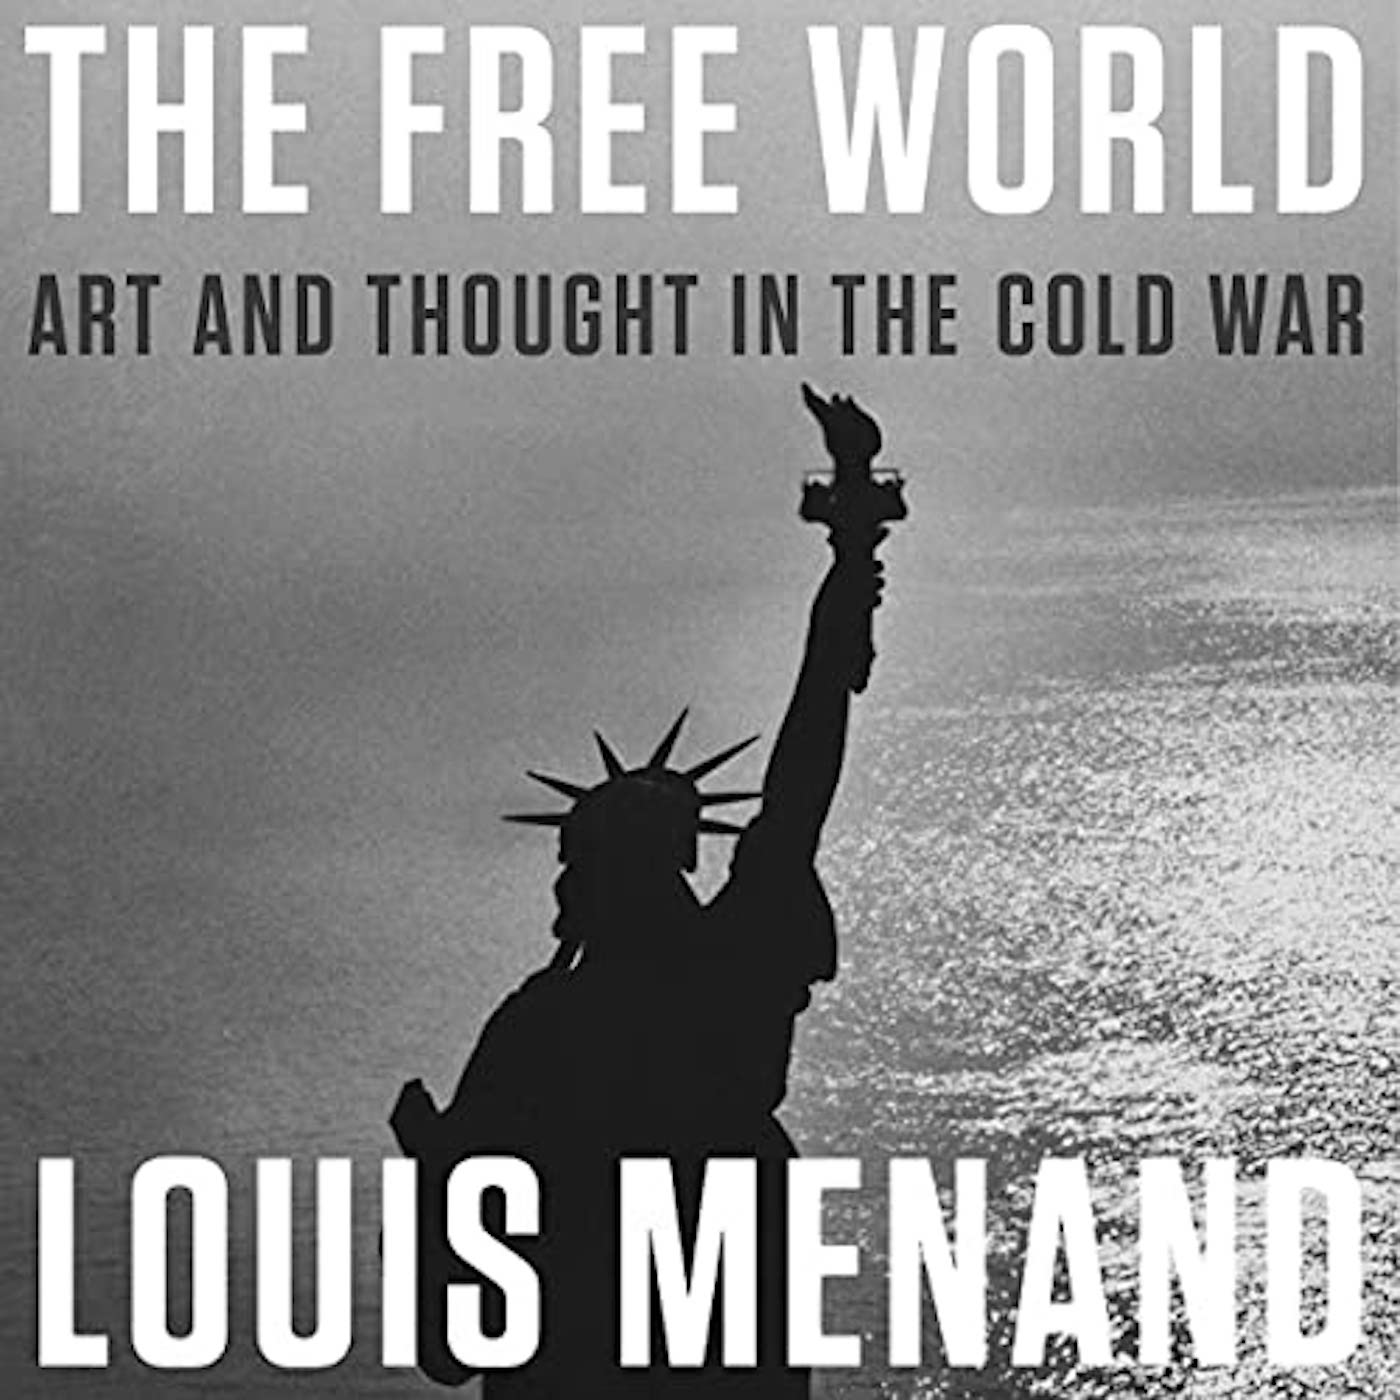 Louis Menand and the Cold War